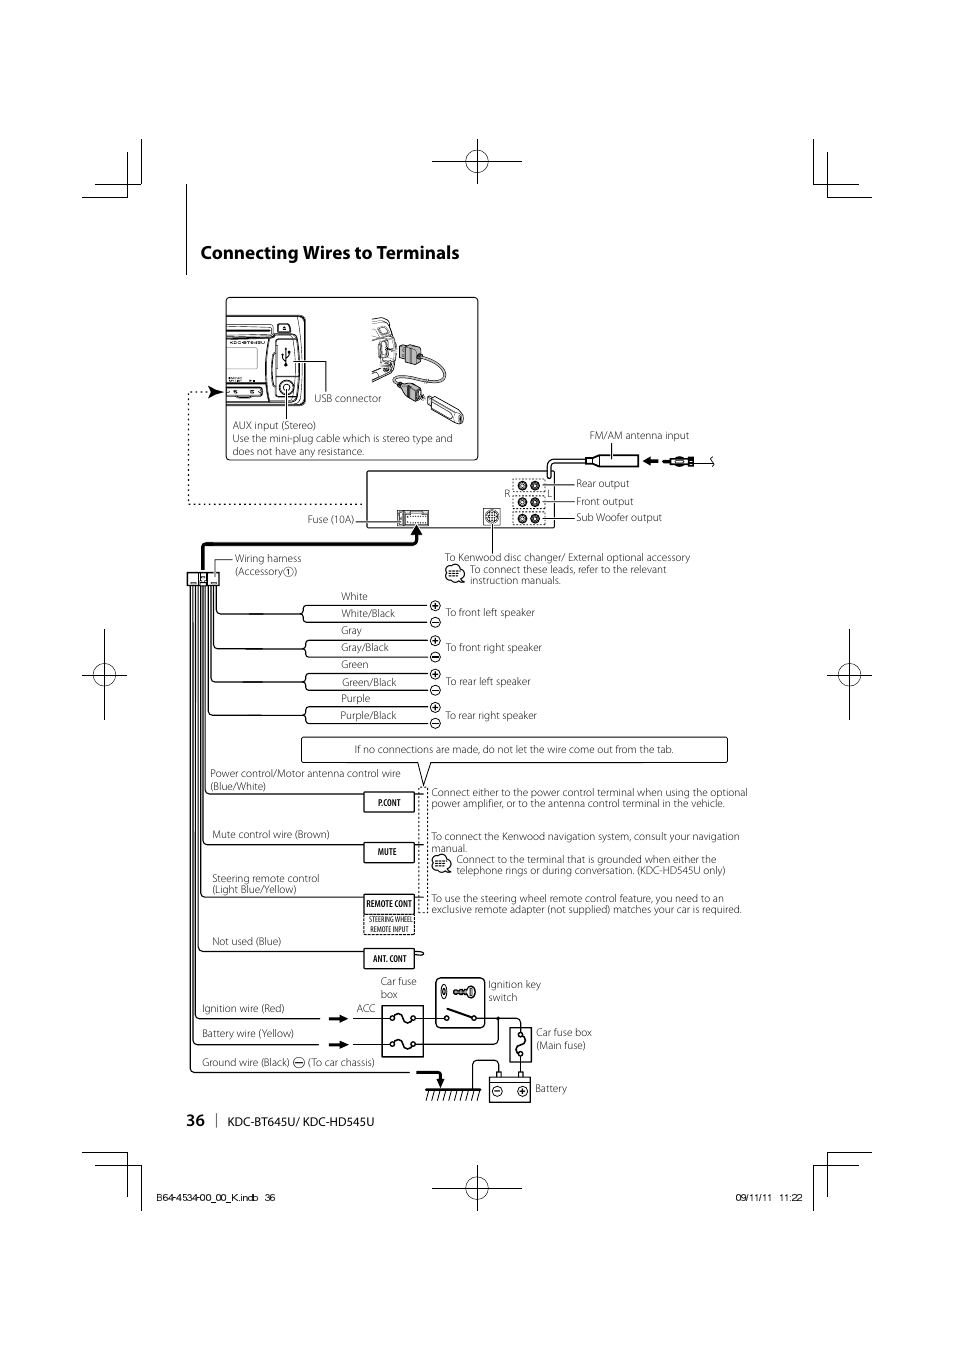 medium resolution of connecting wires to terminals kenwood kdc hd545u user manual kenwood kdc 138 wiring harness diagram kenwood kdc wiring harness diagram